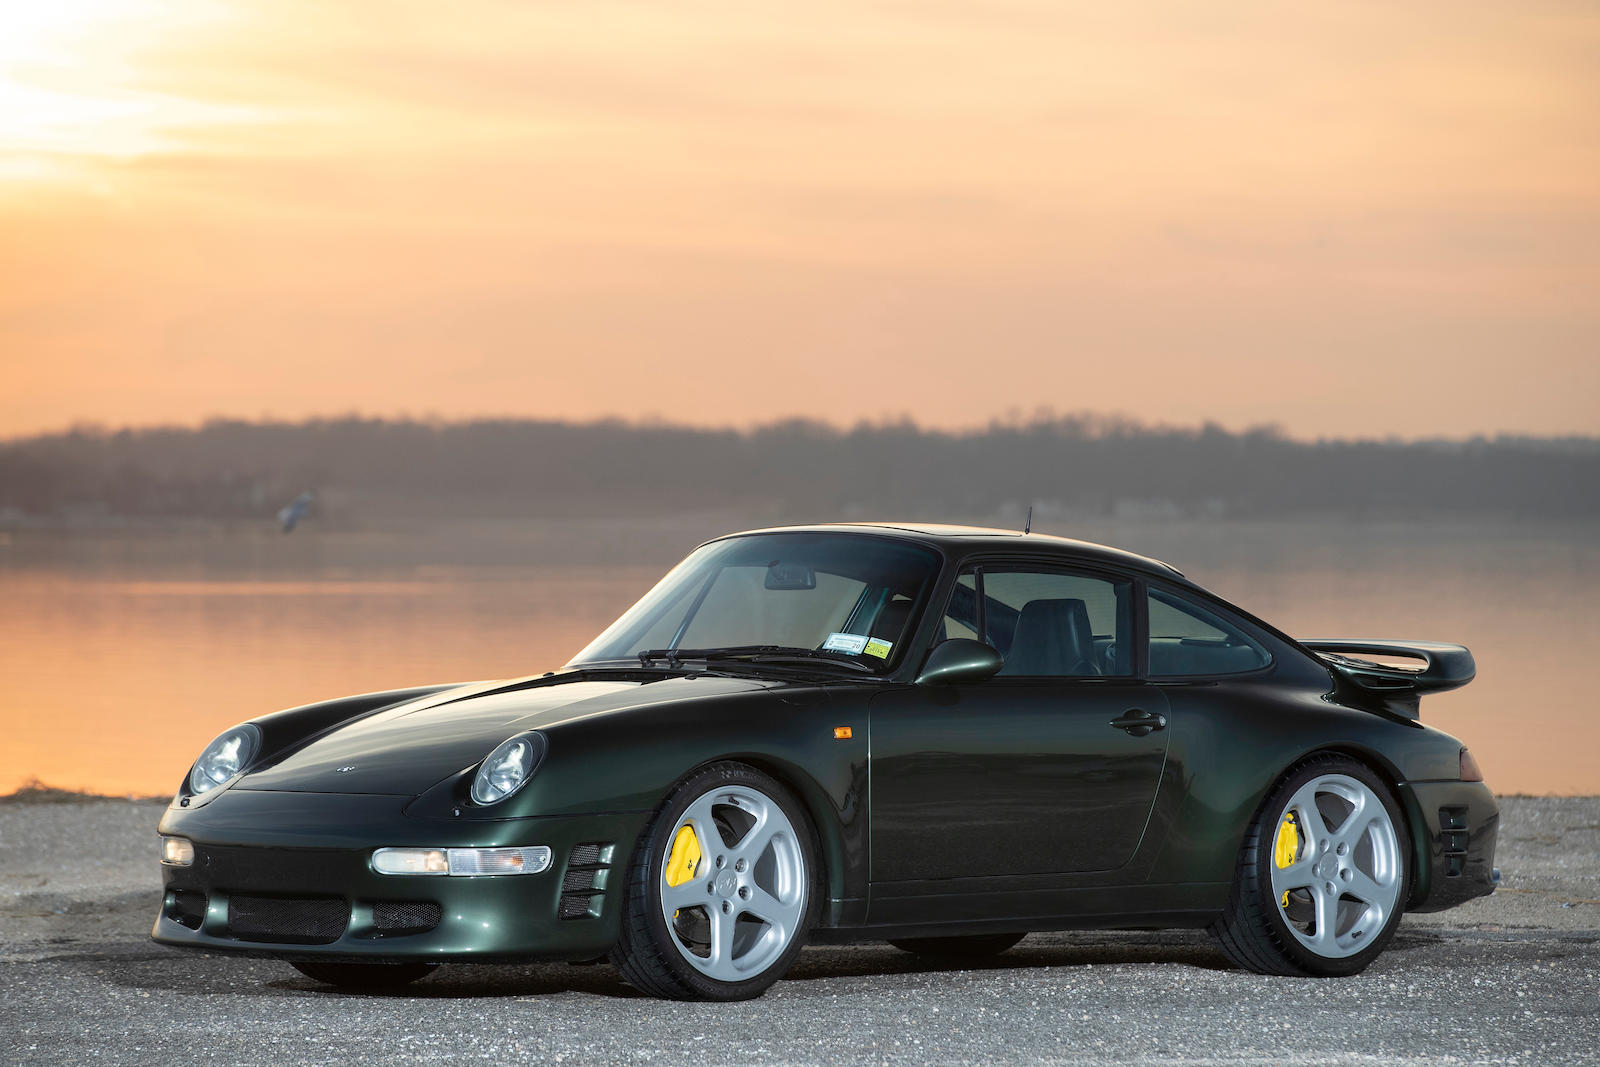 1998 RUF 911 Turbo R Coupe